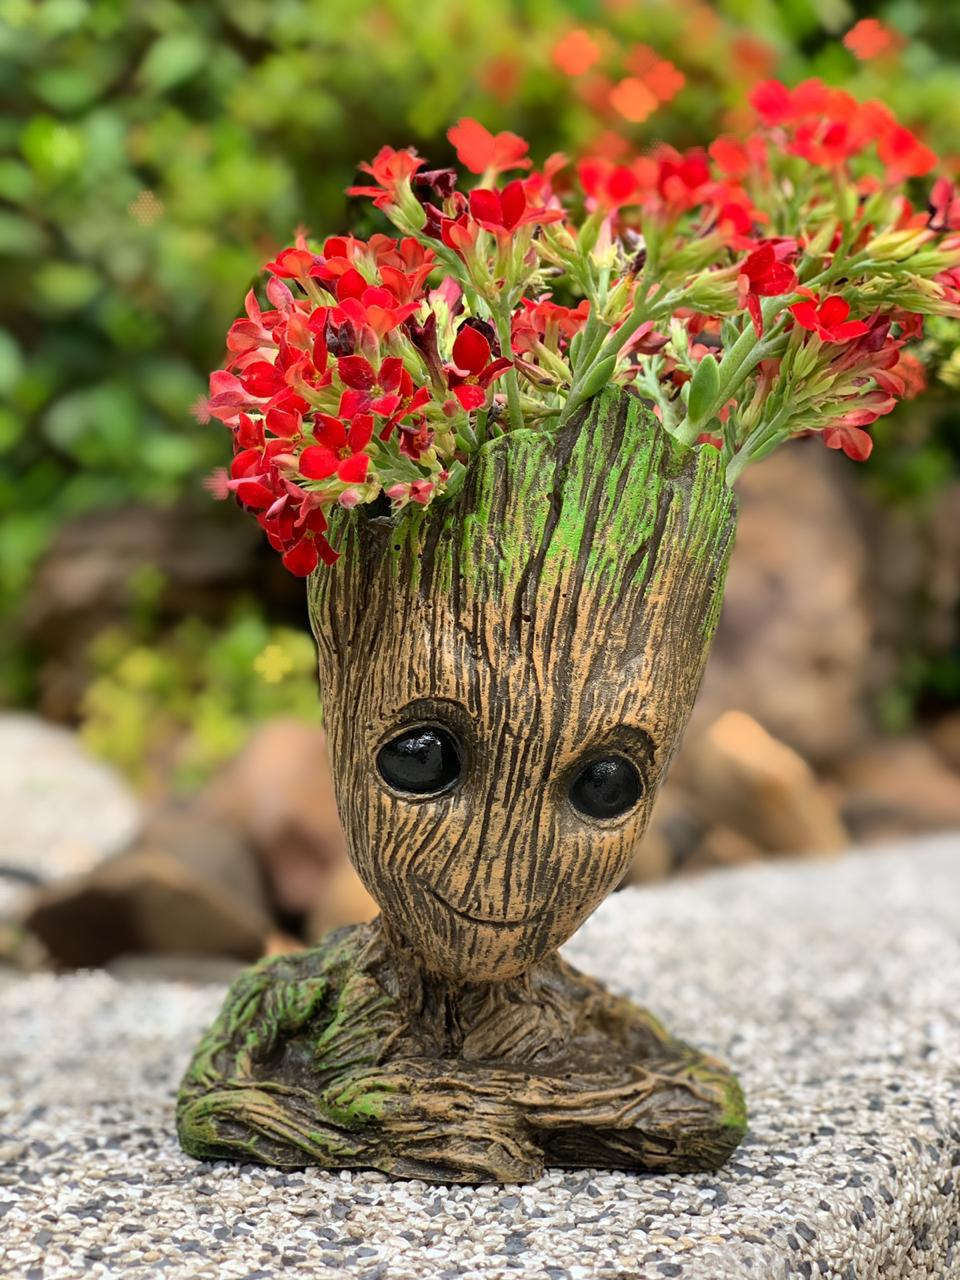 Vaso de Planta Baby Groot : Guardiões da Galáxia Vol. 2 (Guardians of the Galaxy Vol. 2) (Cachepot)